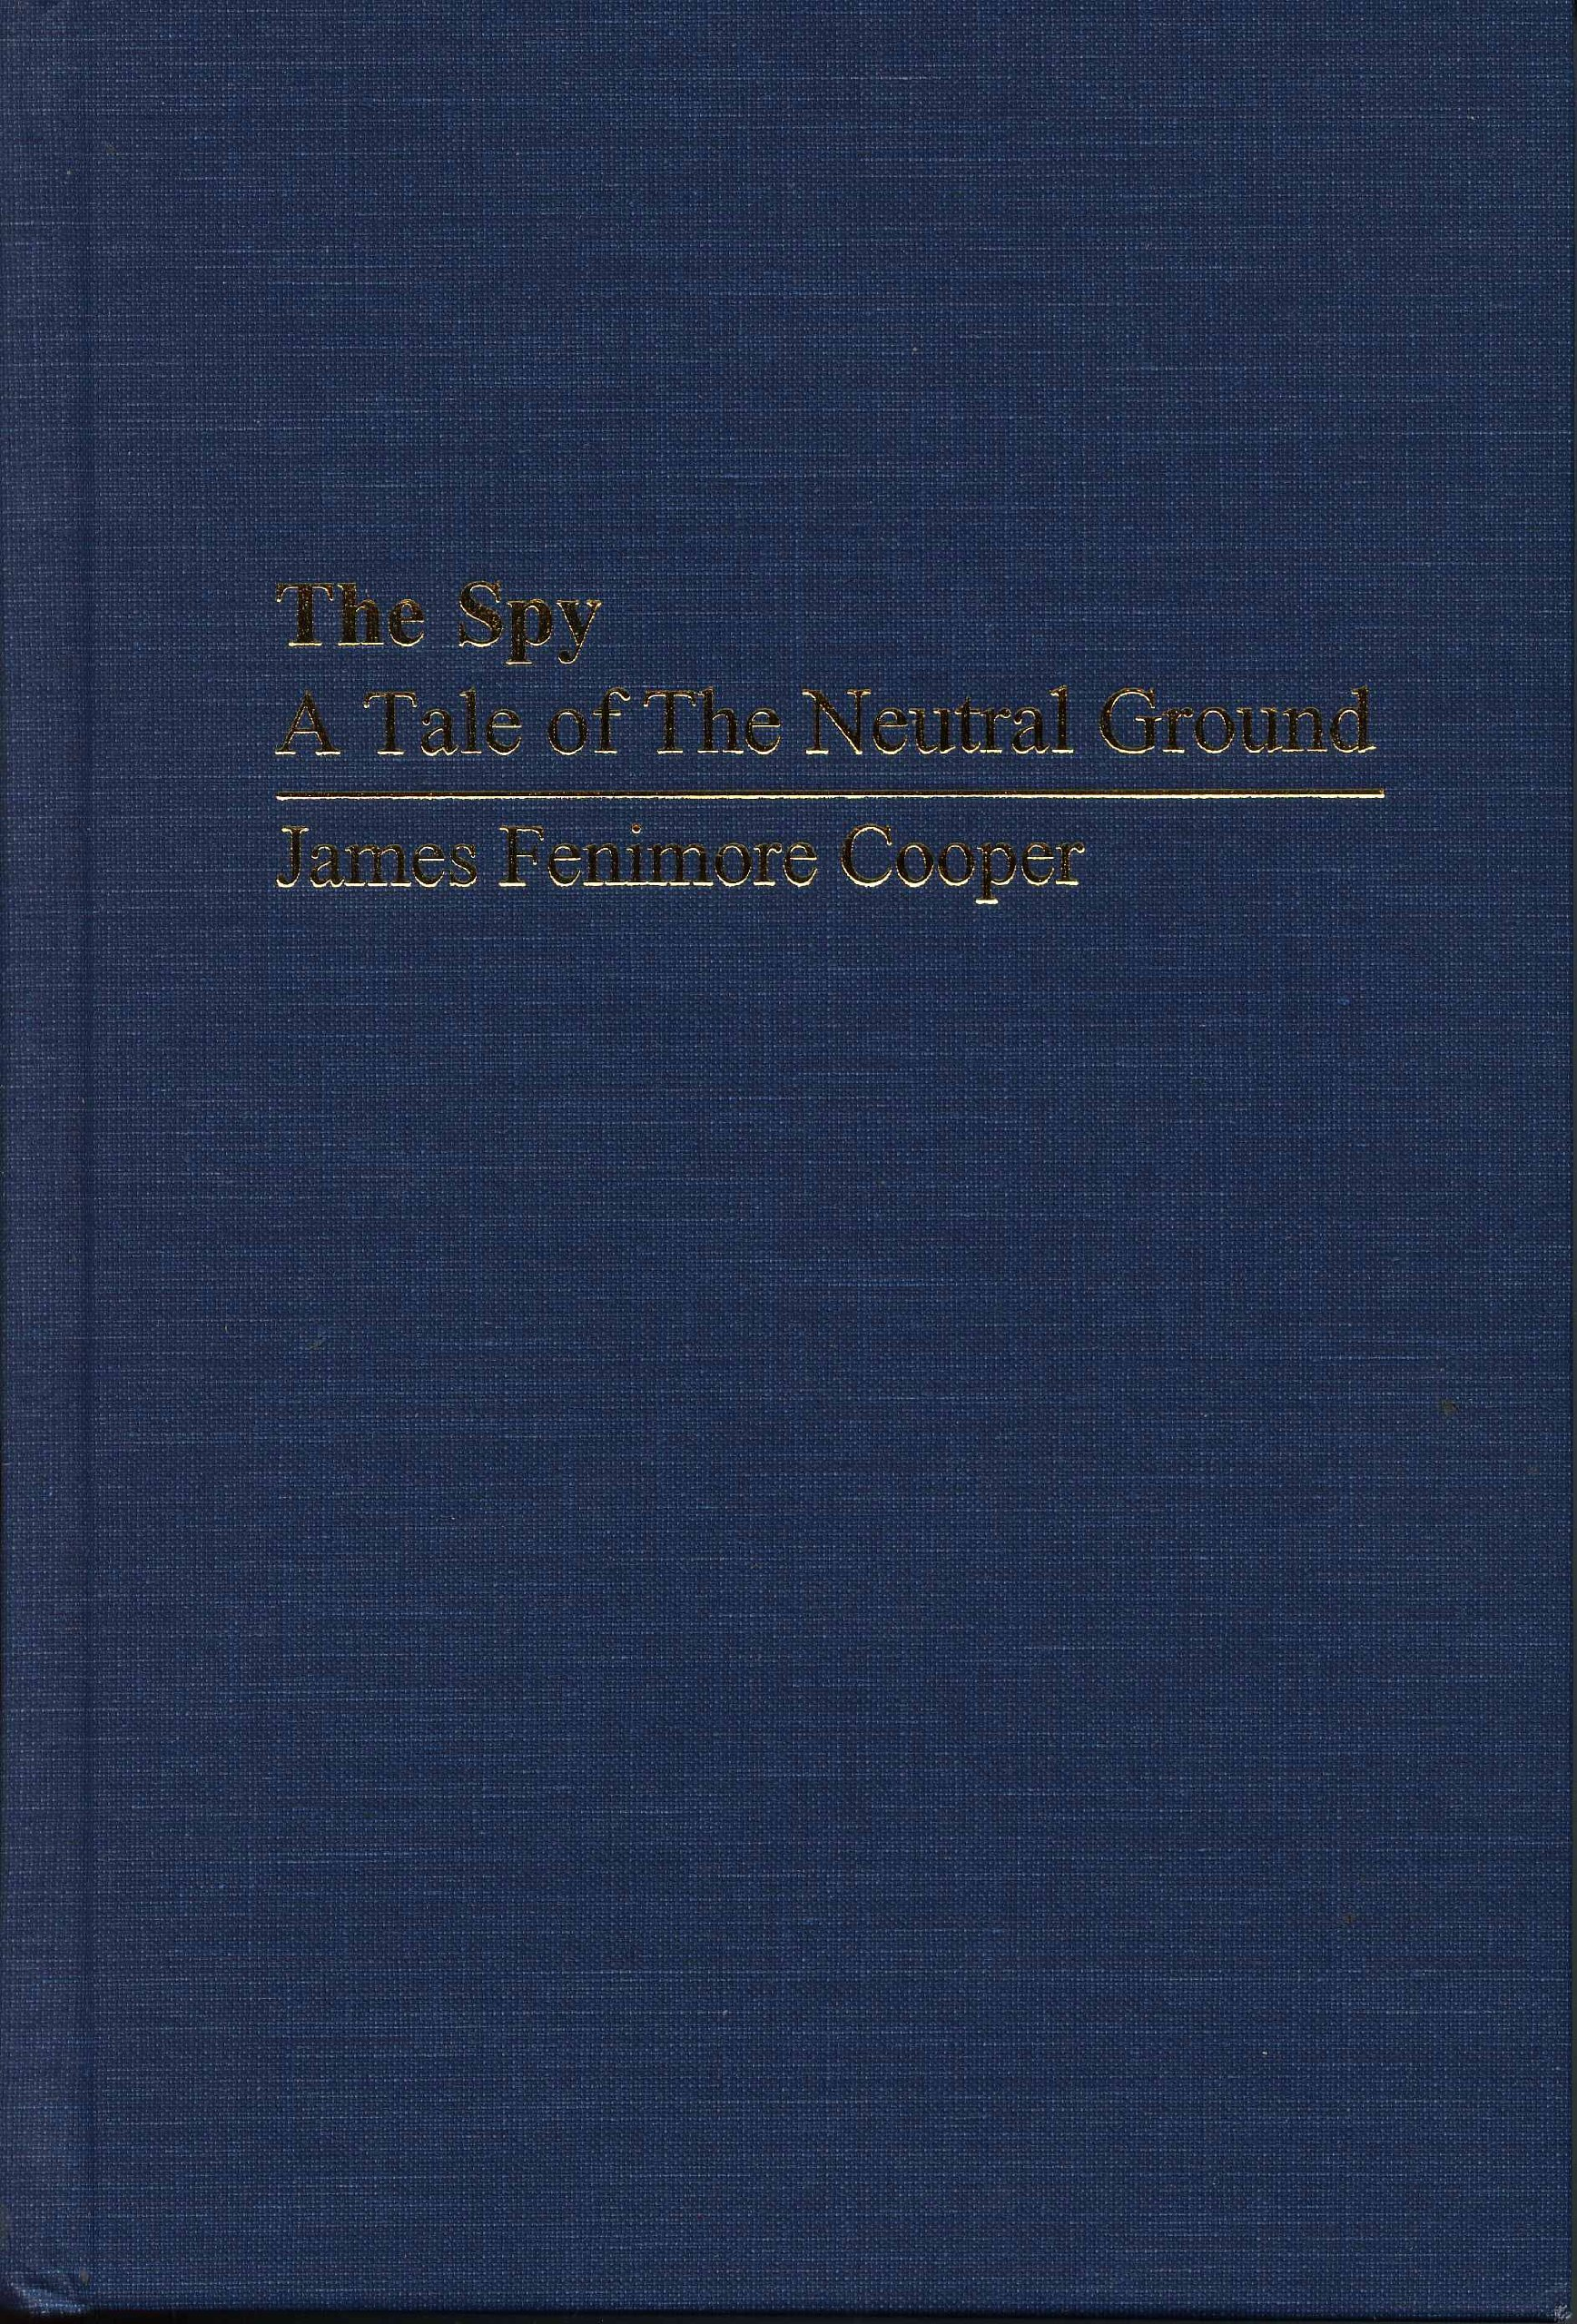 The Spy: A Tale of the Neutral Ground (Ams Studies in the Nineteenth Century) PDF